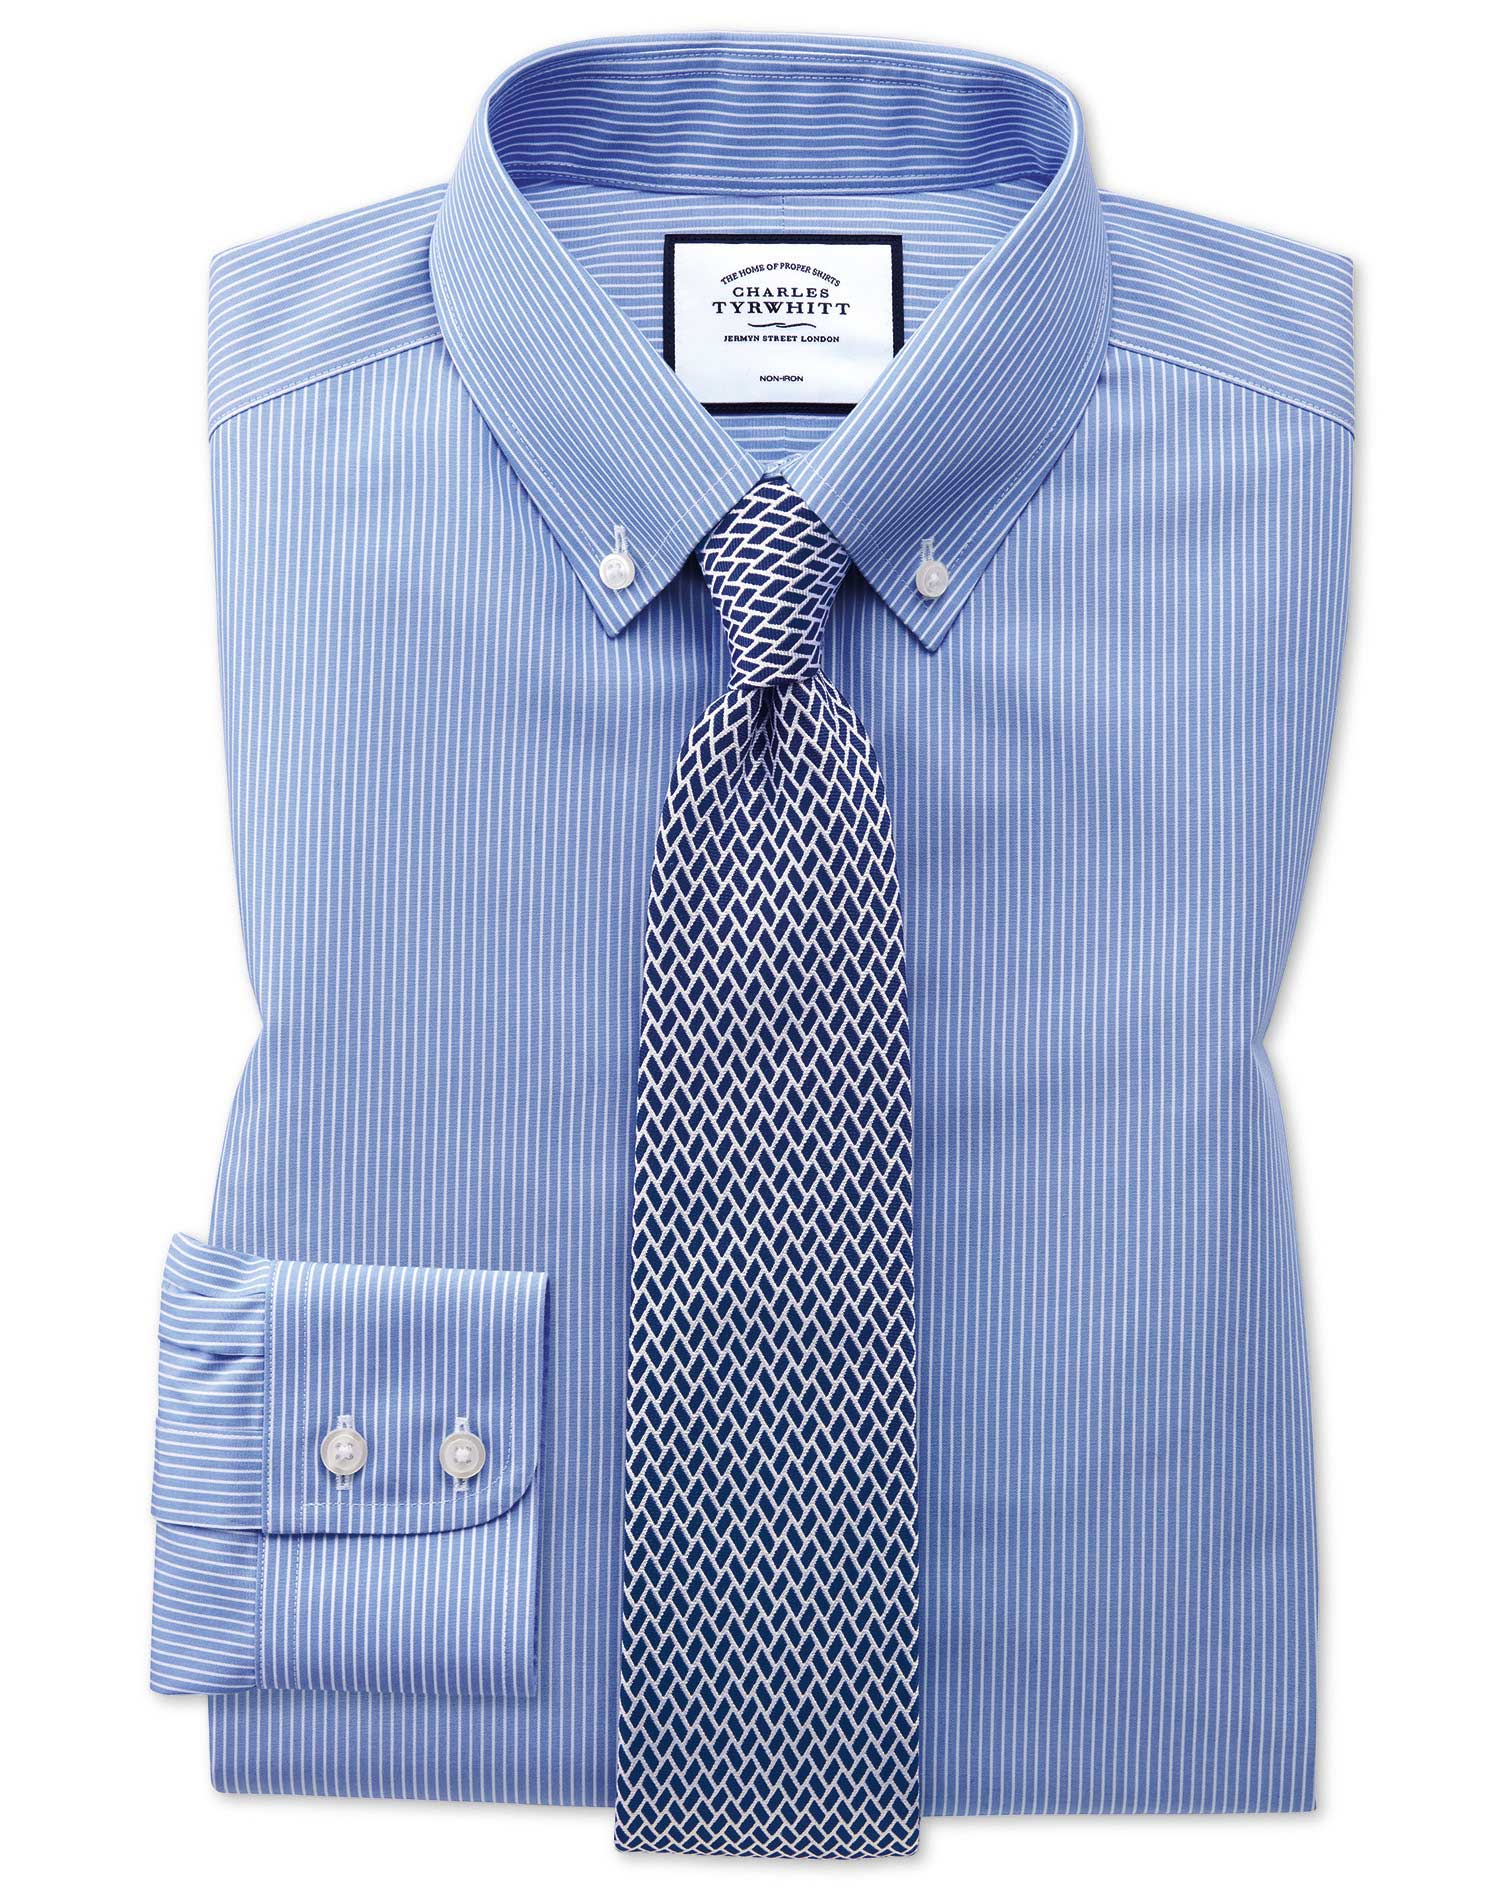 Classic Fit Button-Down Non-Iron Blue and White Stripe Cotton Formal Shirt Single Cuff Size 15/34 by